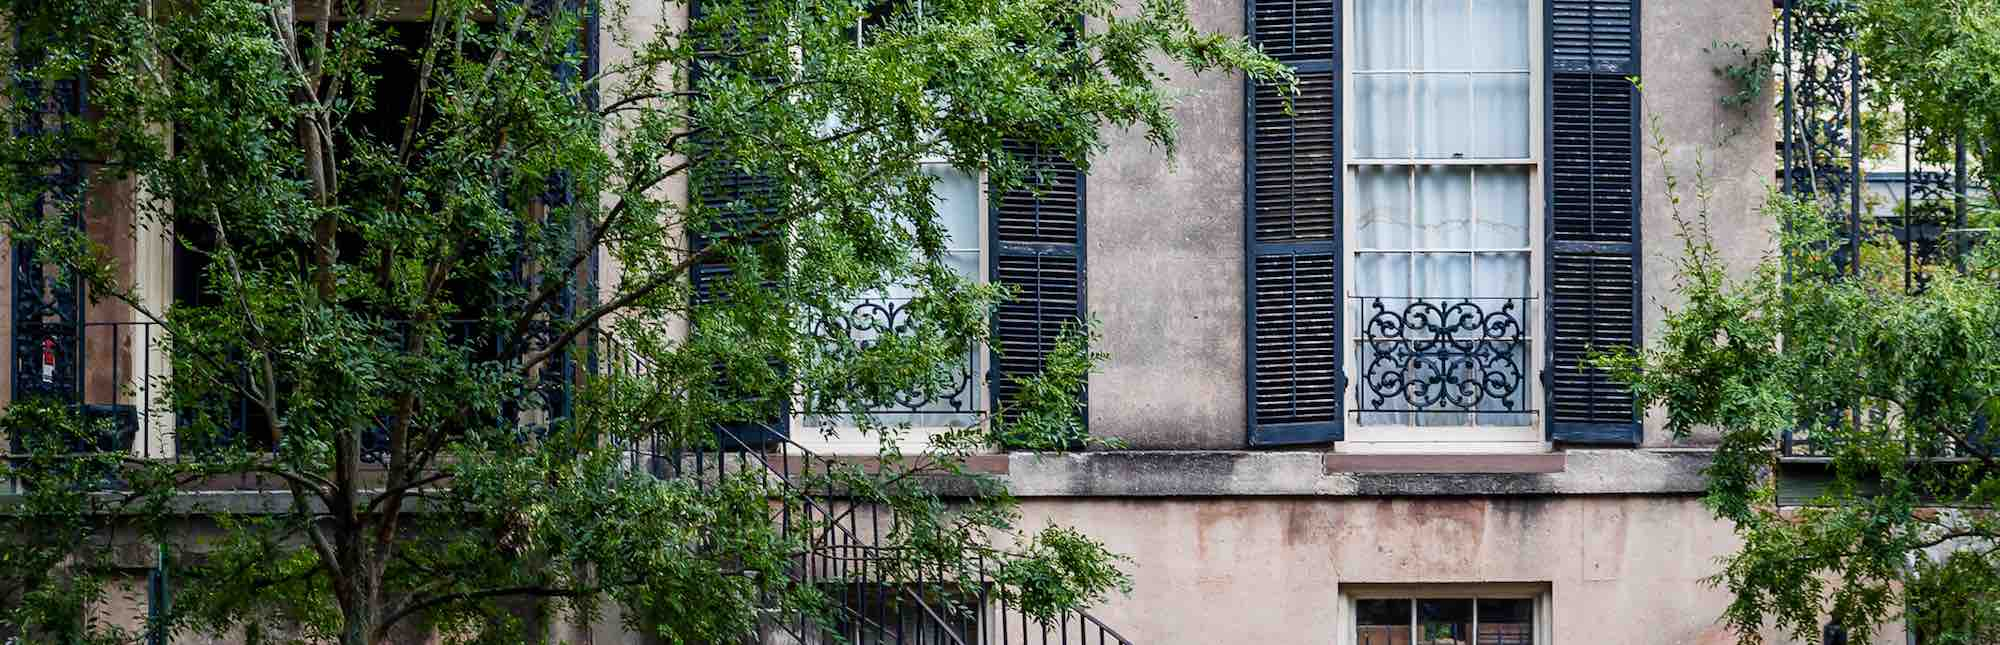 Side view of a town house in Savannah, GA.